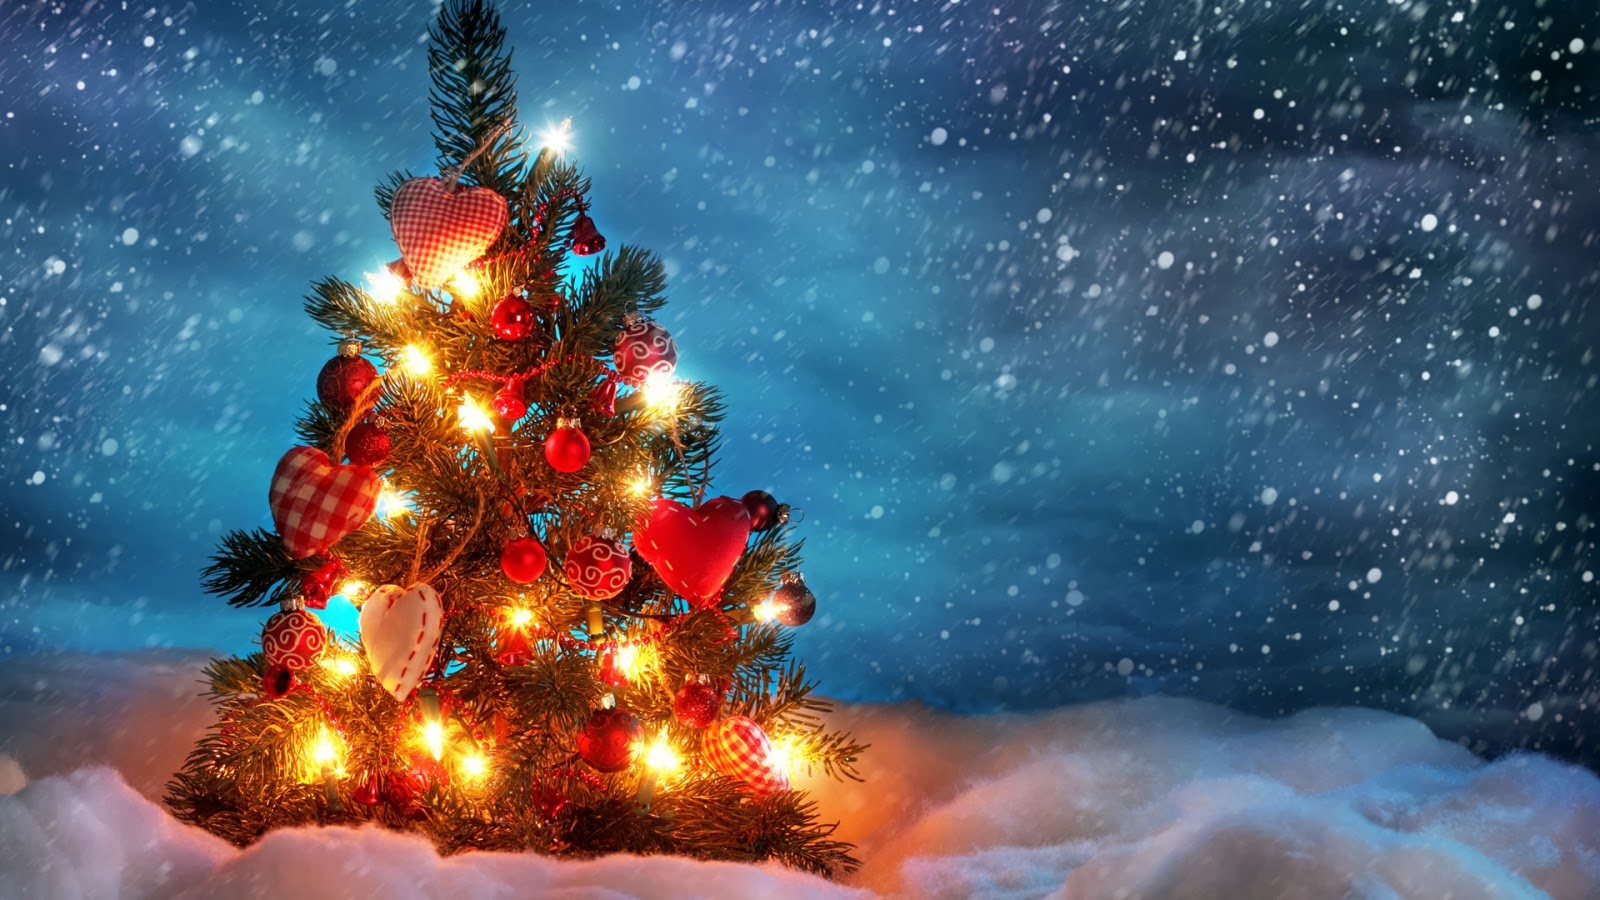 stunning art Christmas Pictures HD